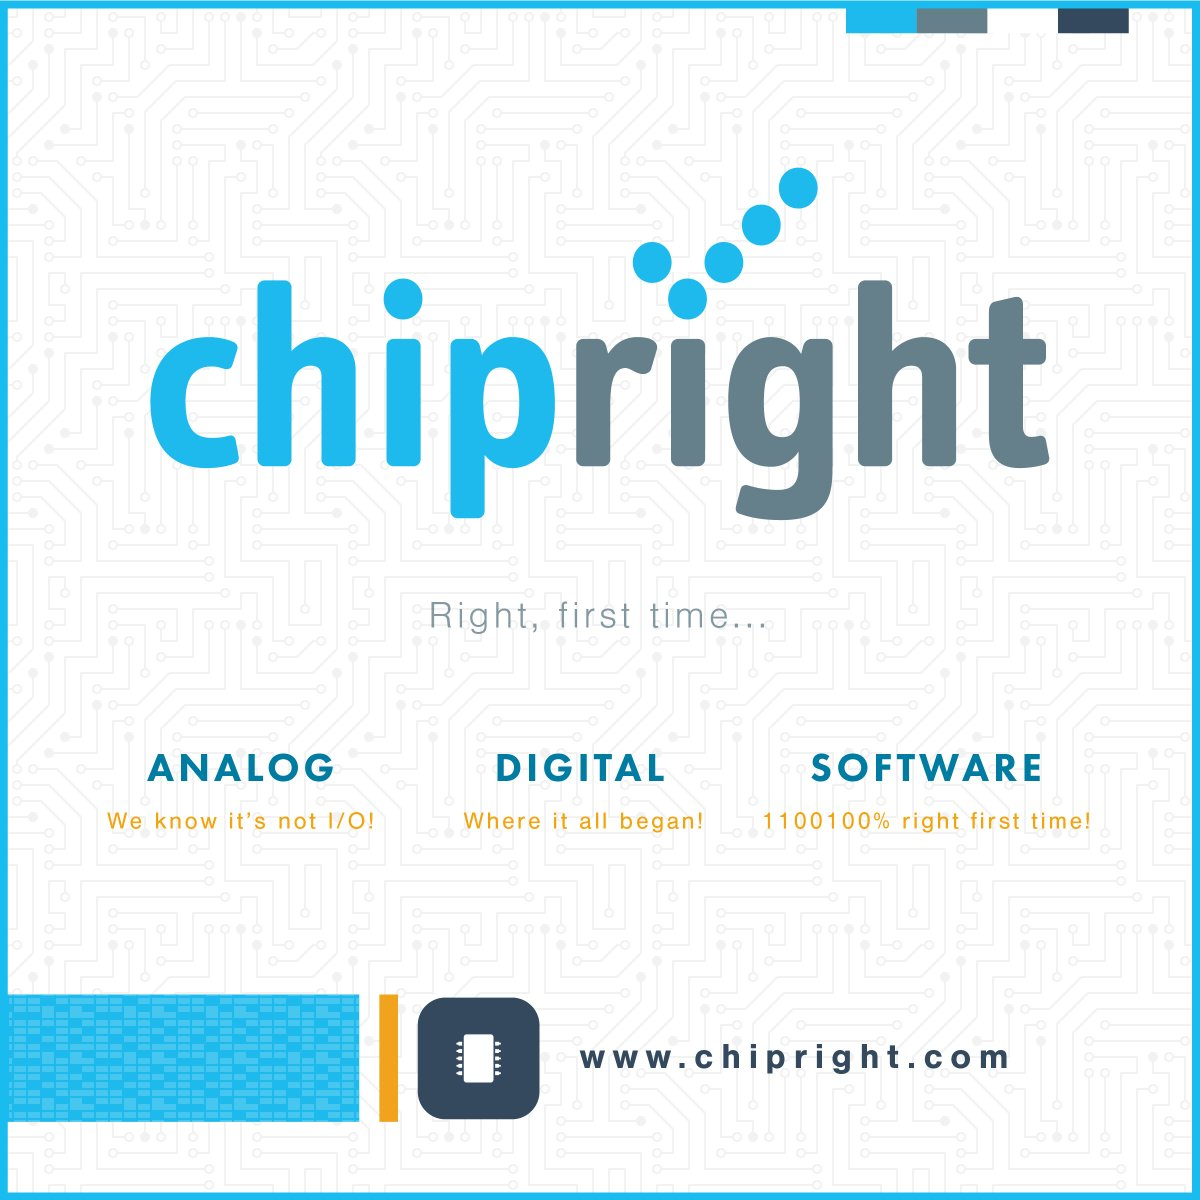 Have a look at one of our cool productions. We had the chance to #design &amp; #develop @Chipright new #Website   http://www. chipright.com / &nbsp;  <br>http://pic.twitter.com/sCVpjvY3lX